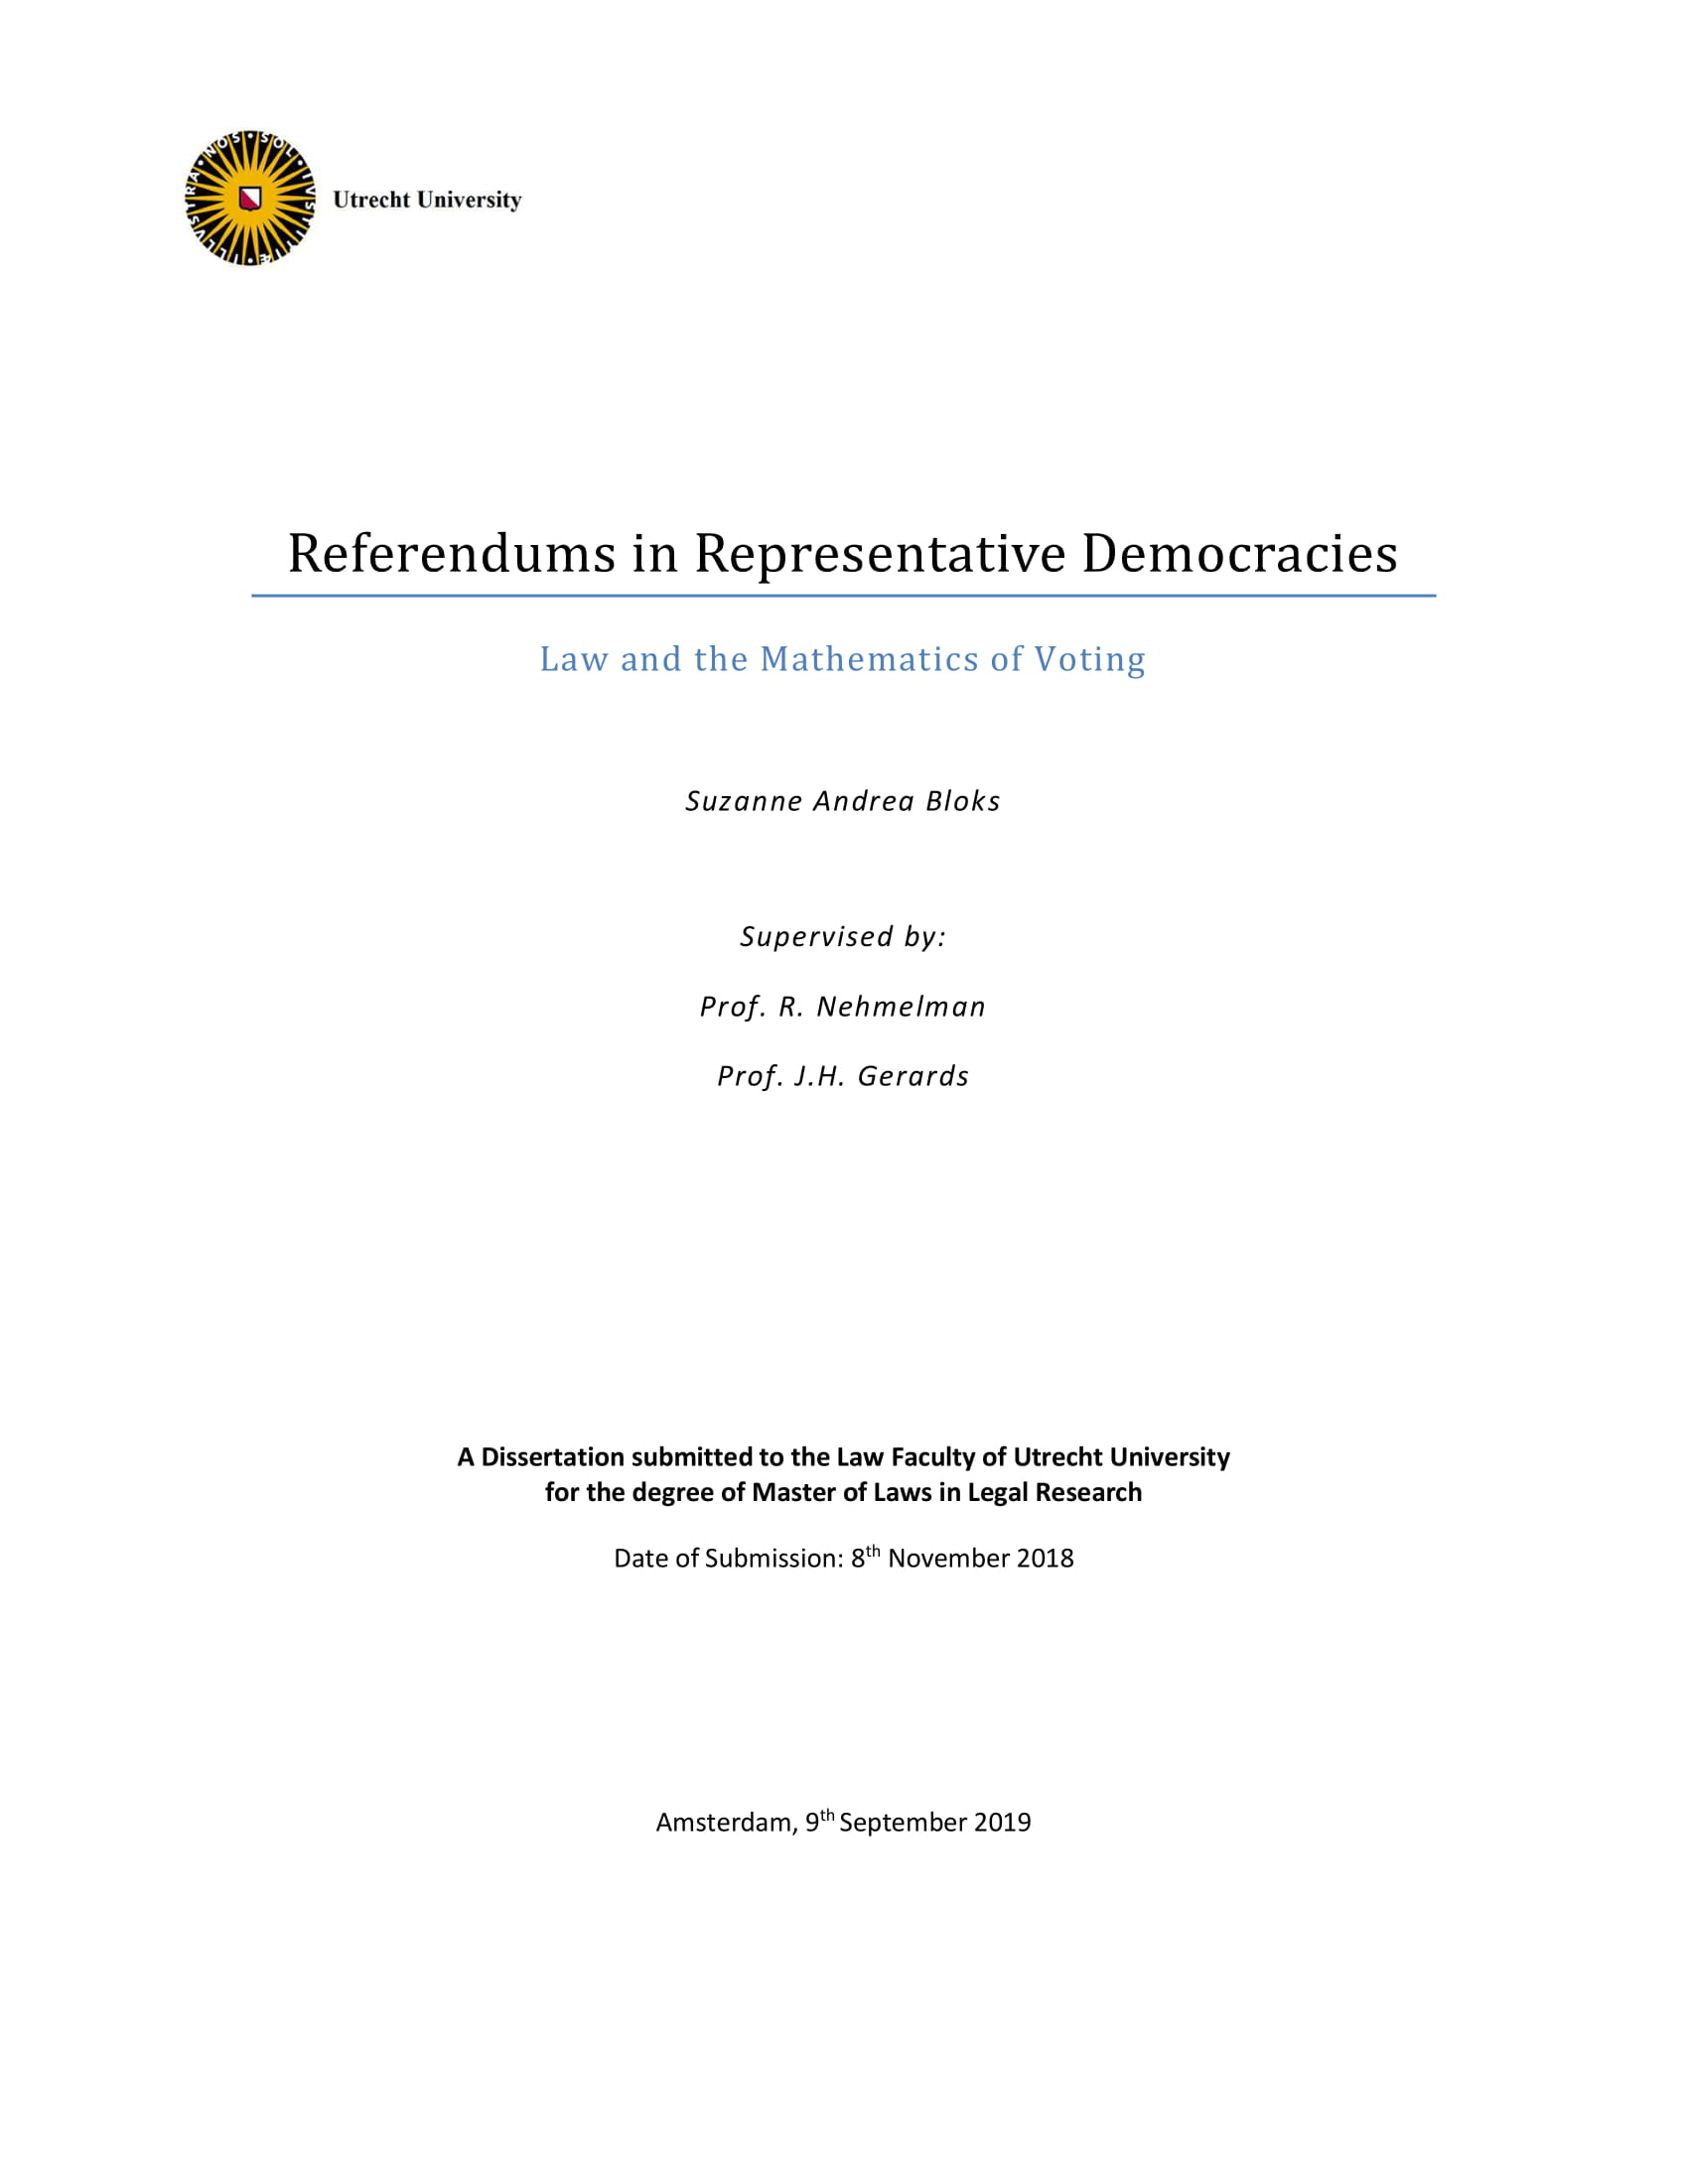 Referendums in Representative Democracies. Law and the Mathematics of Voting.